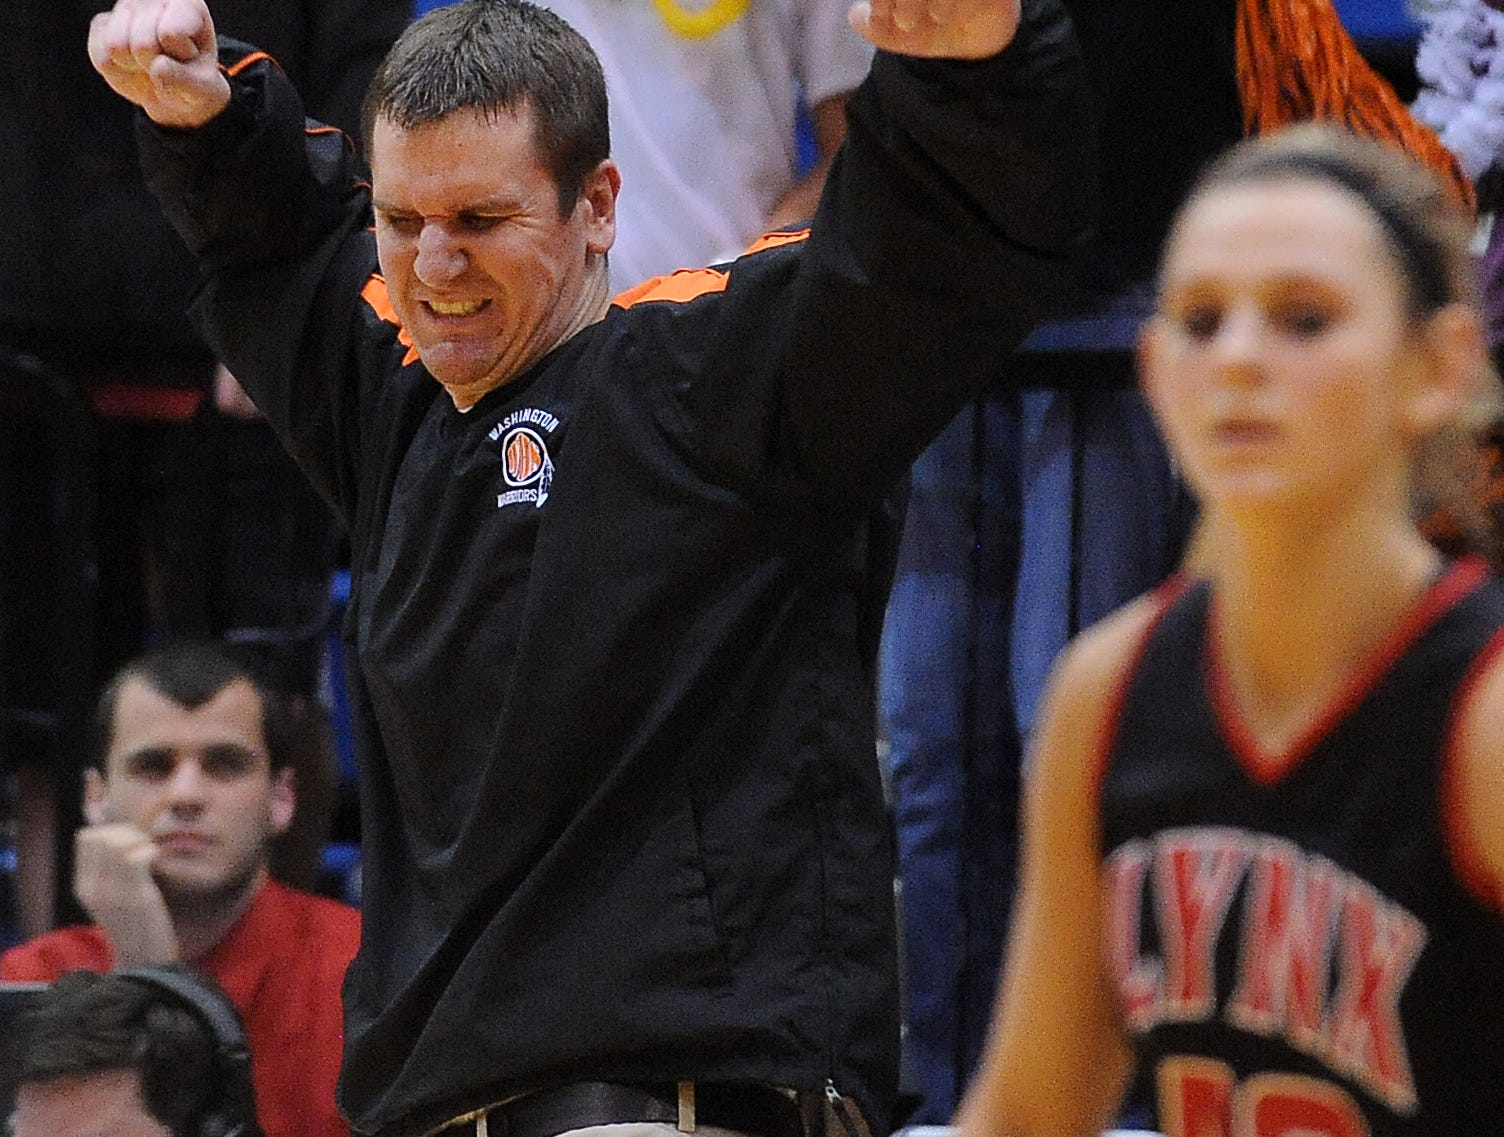 Washington Warrior head coach, Nate Malchow celebrates his team's 61-50 win over Brandon Valley Friday night in the girls class AA basketball semifinals at Frost Arena in Brookings, March 9, 2012. 